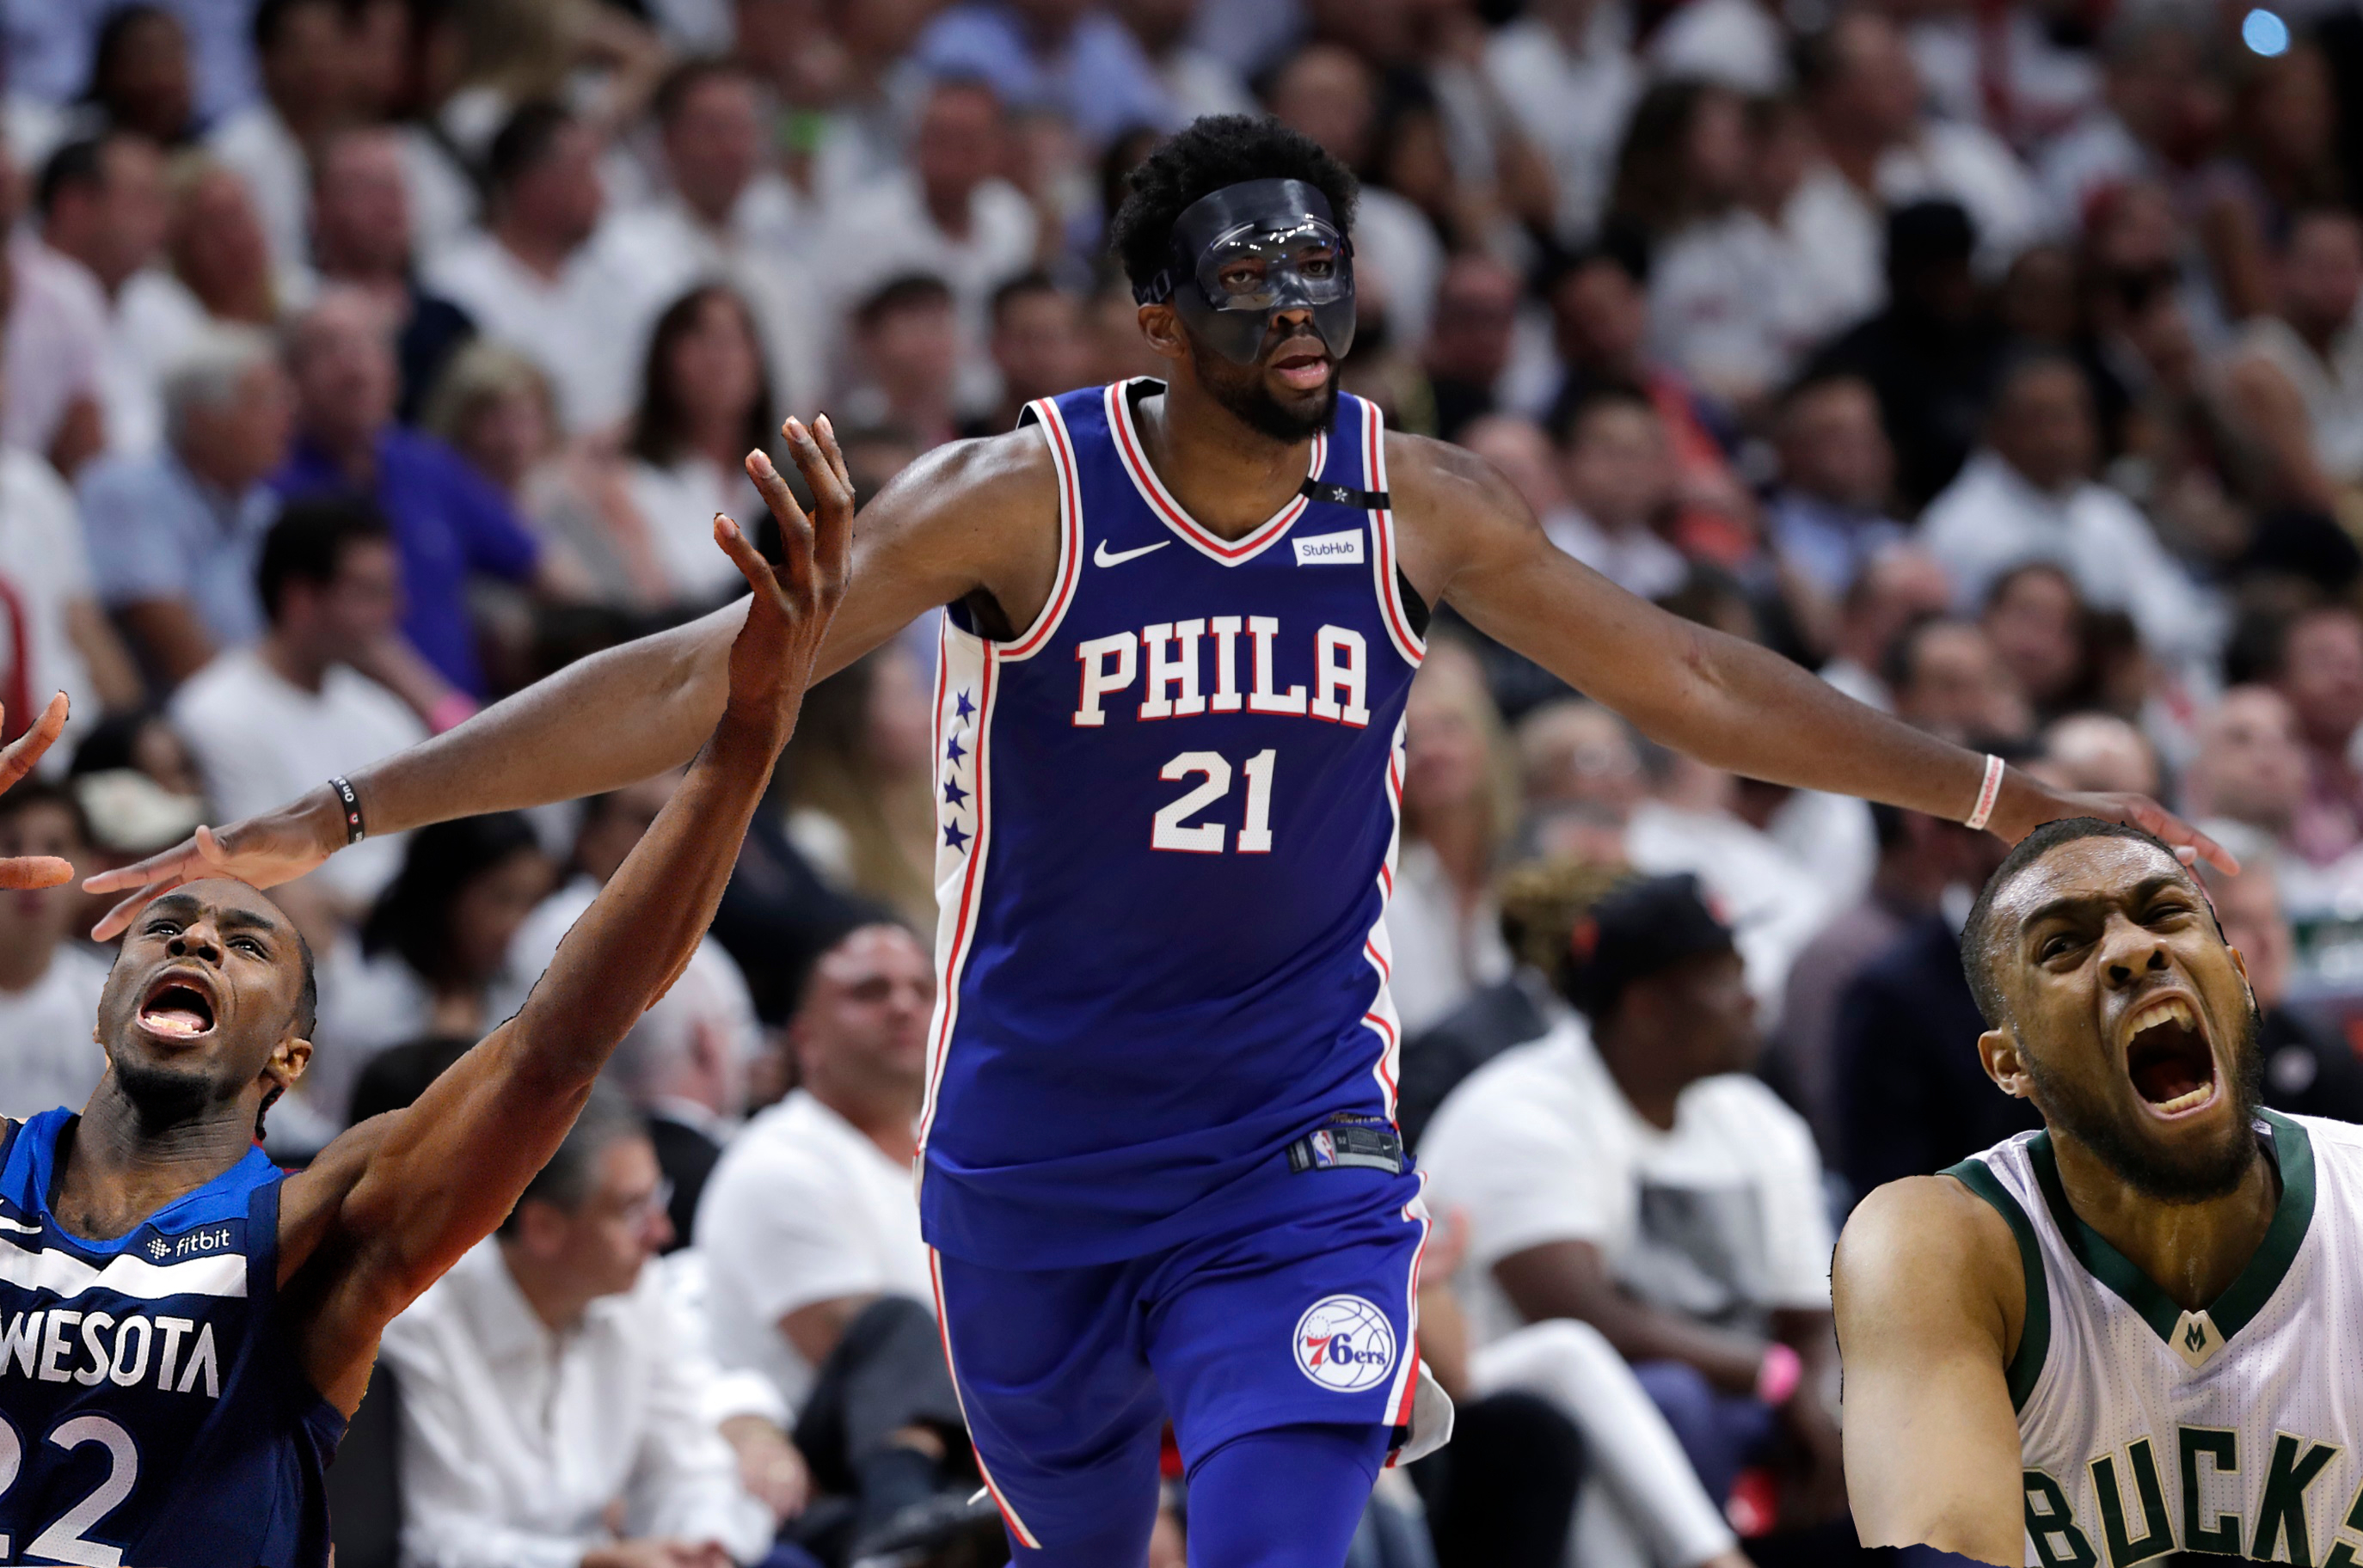 EMBIID PLAYS, meaning only took 4 years for the Top 3 picks of 2014 draft to make playoffs